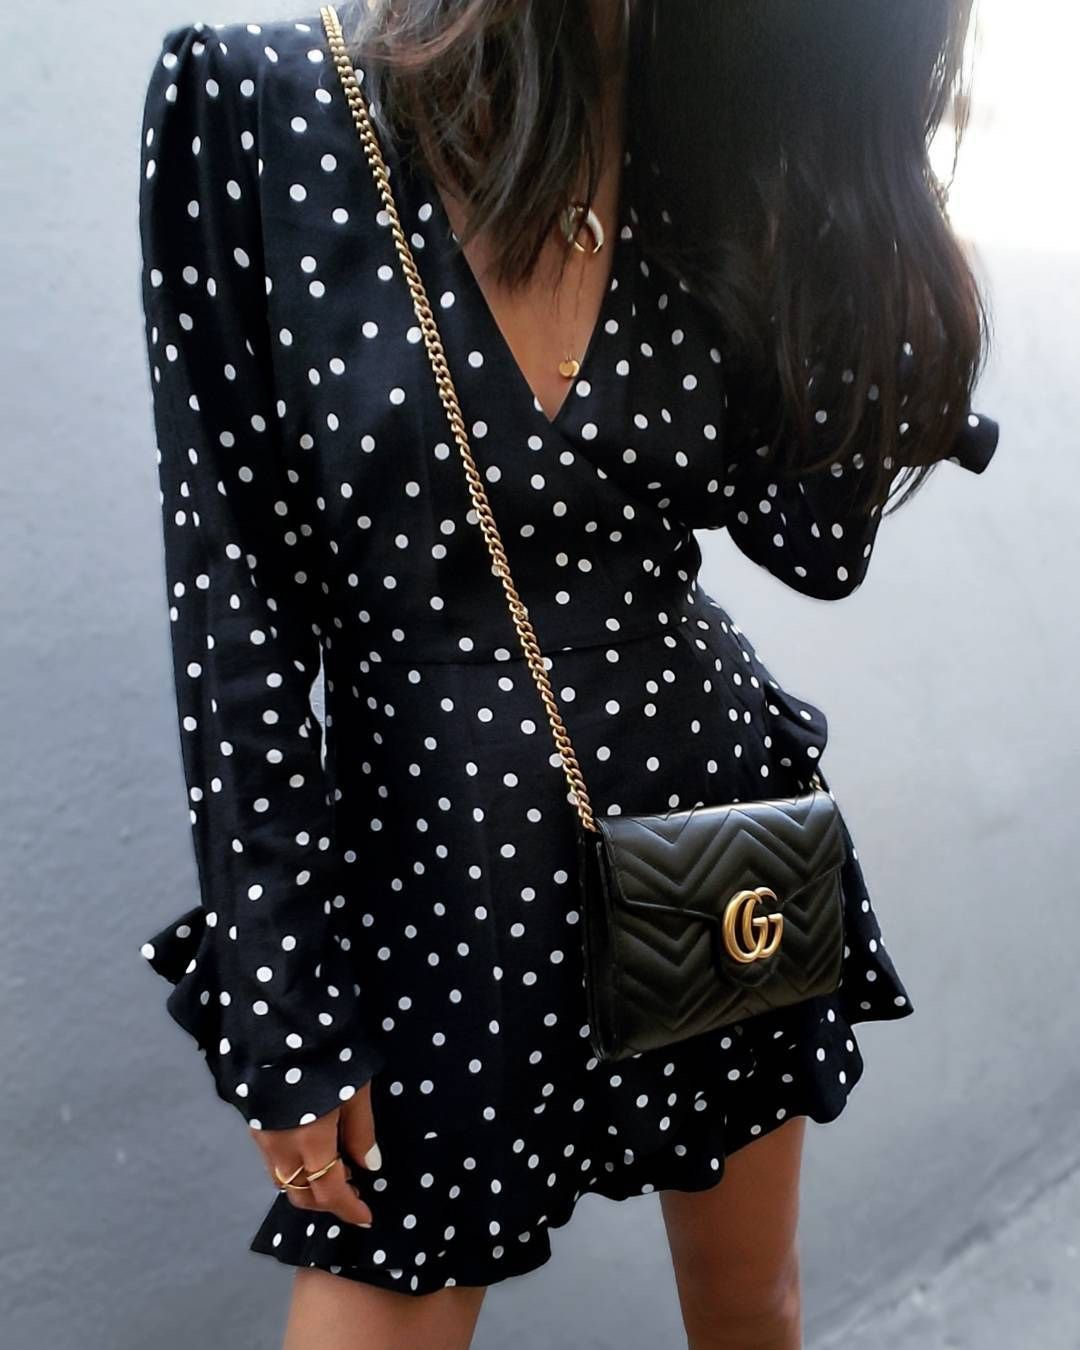 Mini black and white polka dot dress with frill sleeves and a cross body Gucci bag